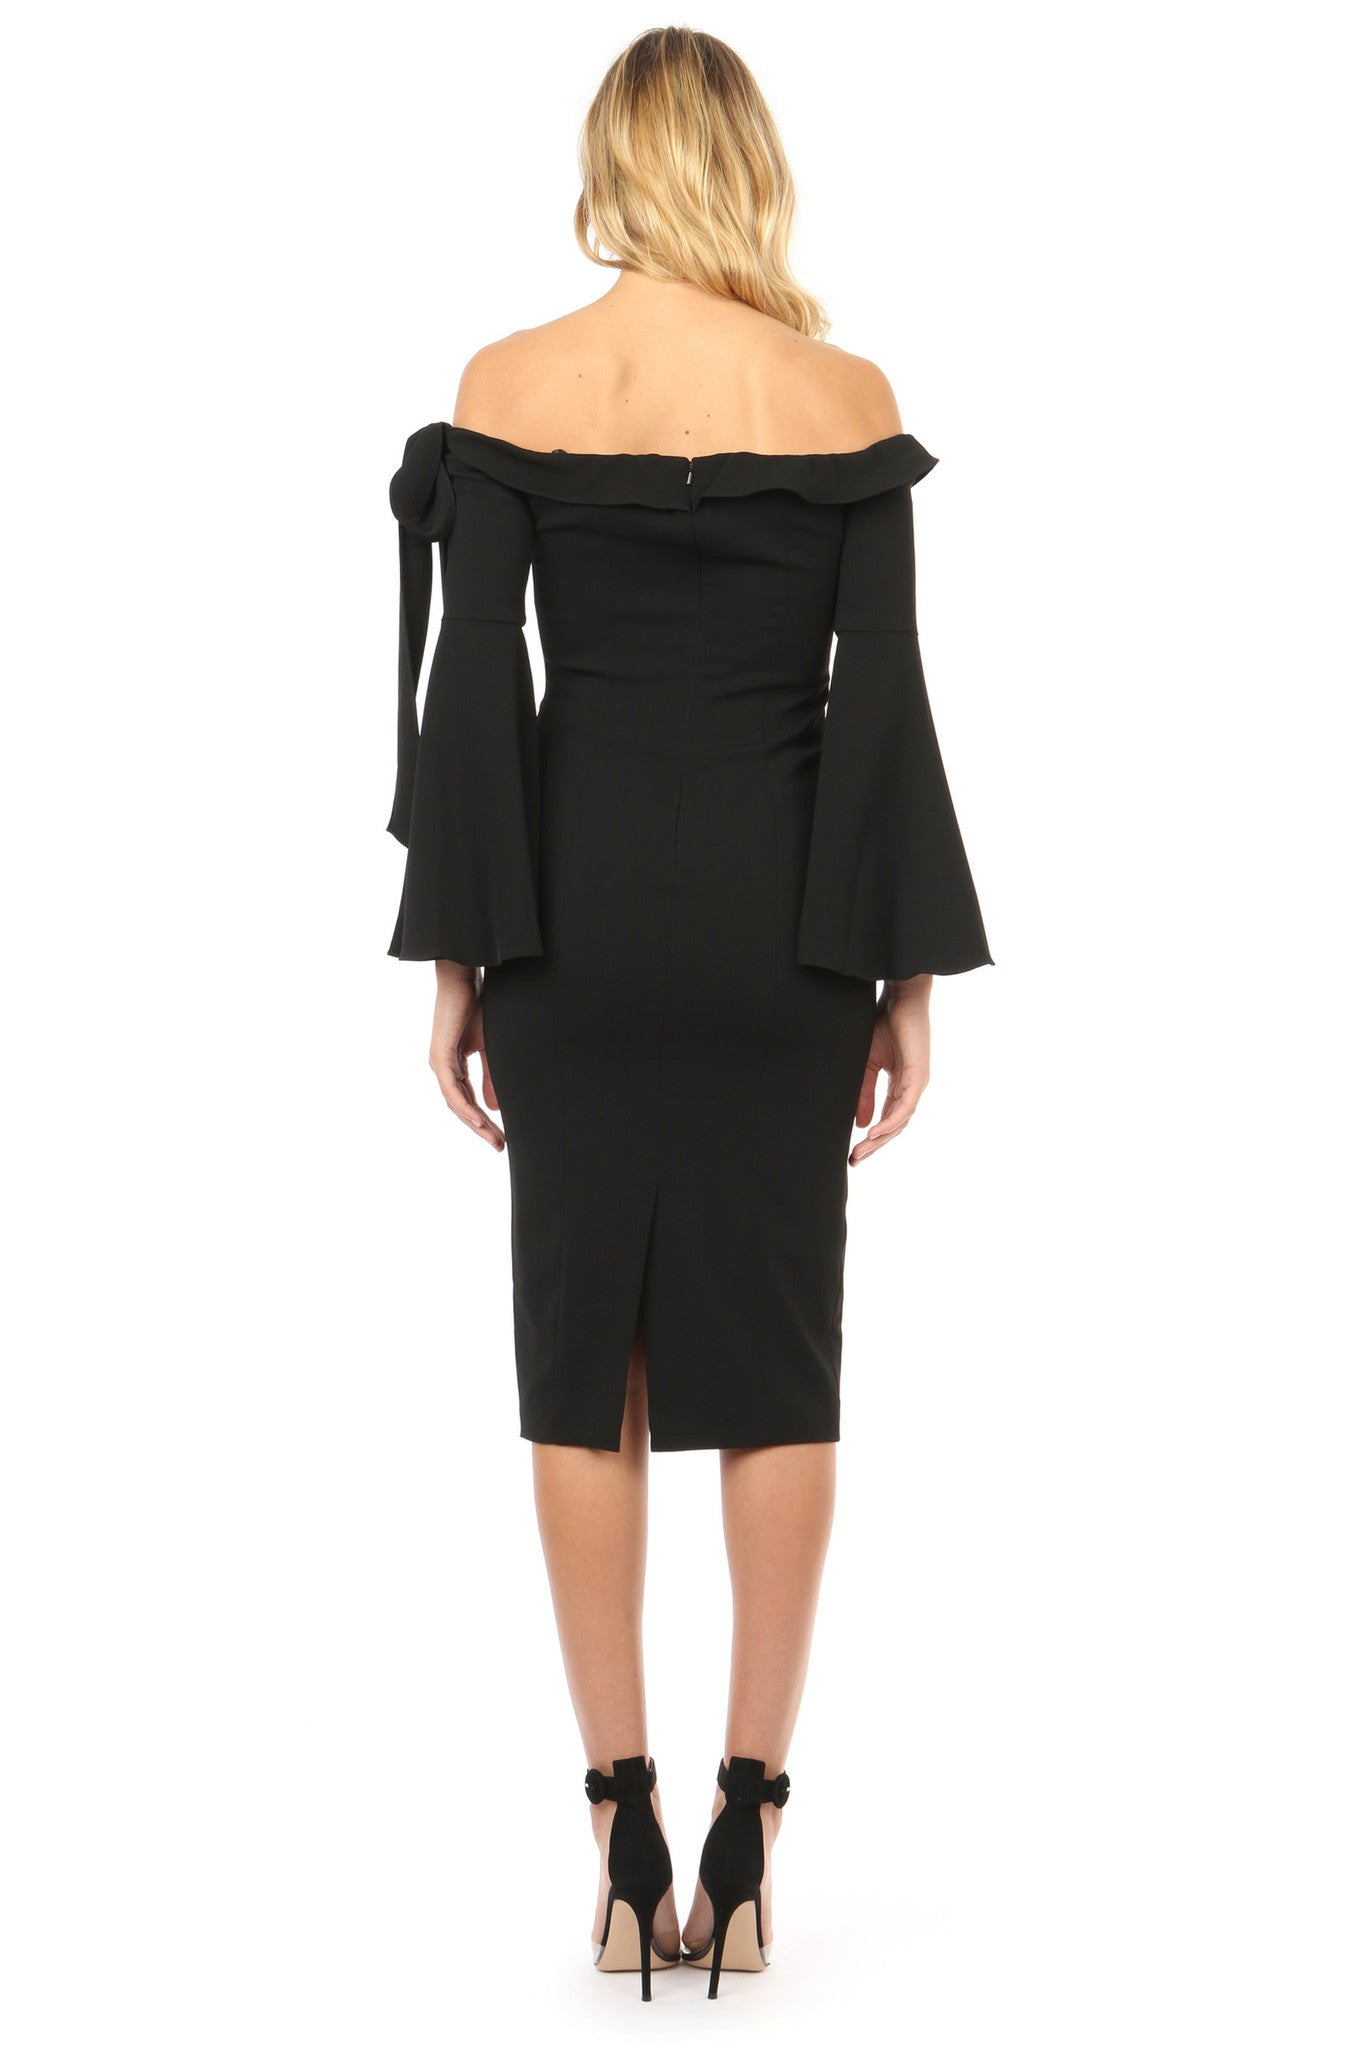 Jay Godfrey Black Off-the-Shoulder Bell Sleeve Dress - Back View